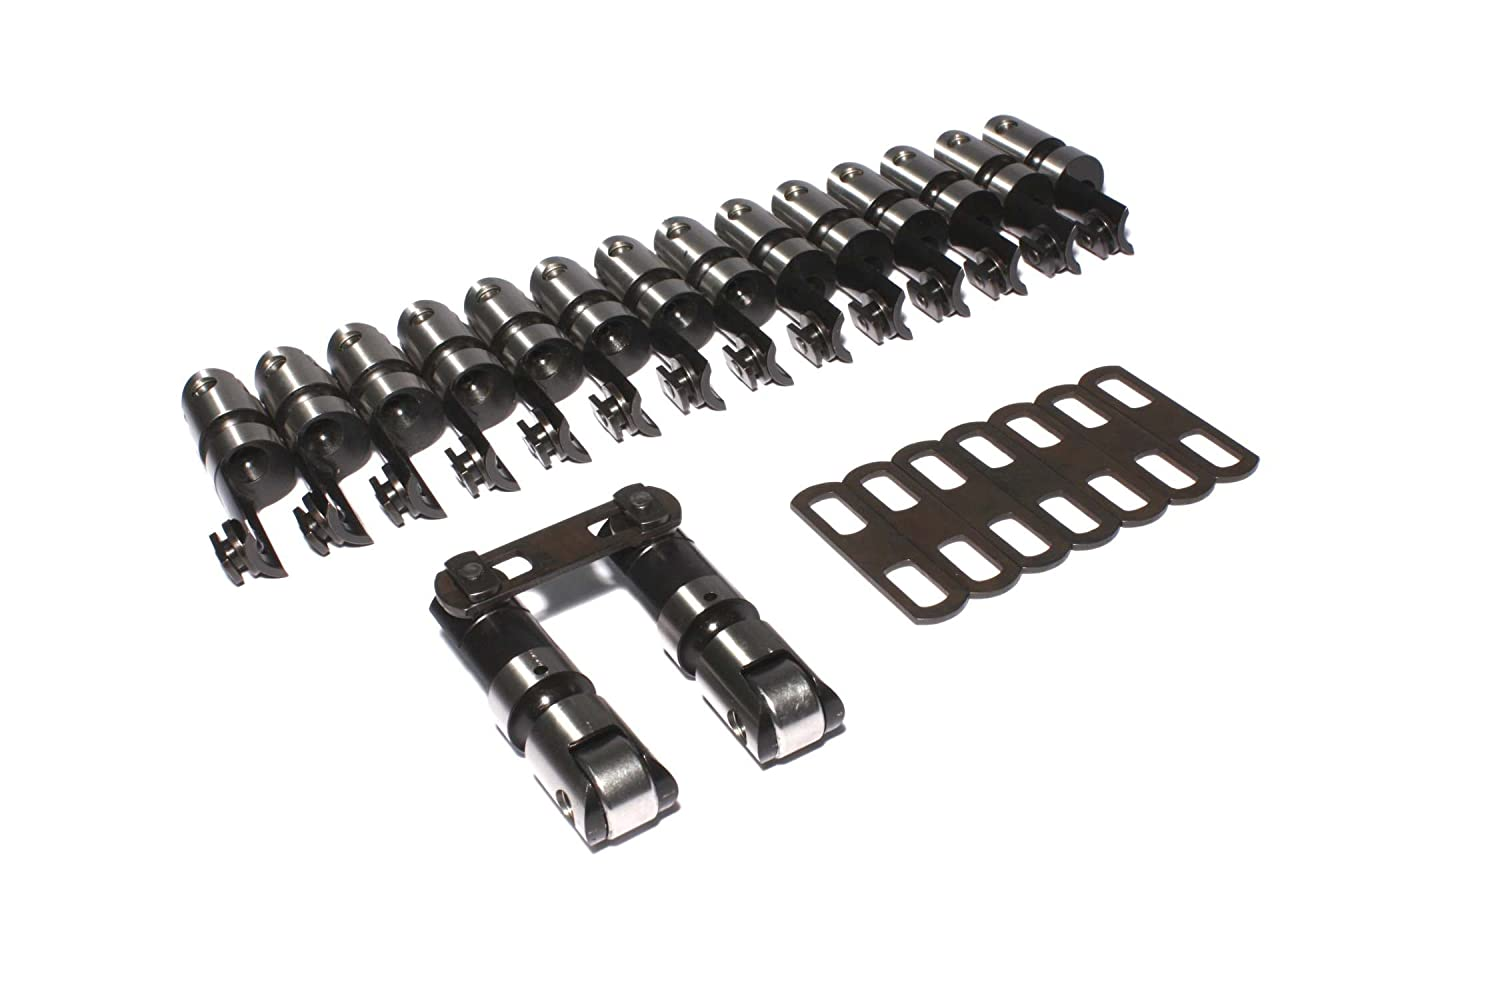 Set of 16 COMP Cams 8992-16 Endure-X Solid Roller Cutaway Lifter for GM SB2 Head,